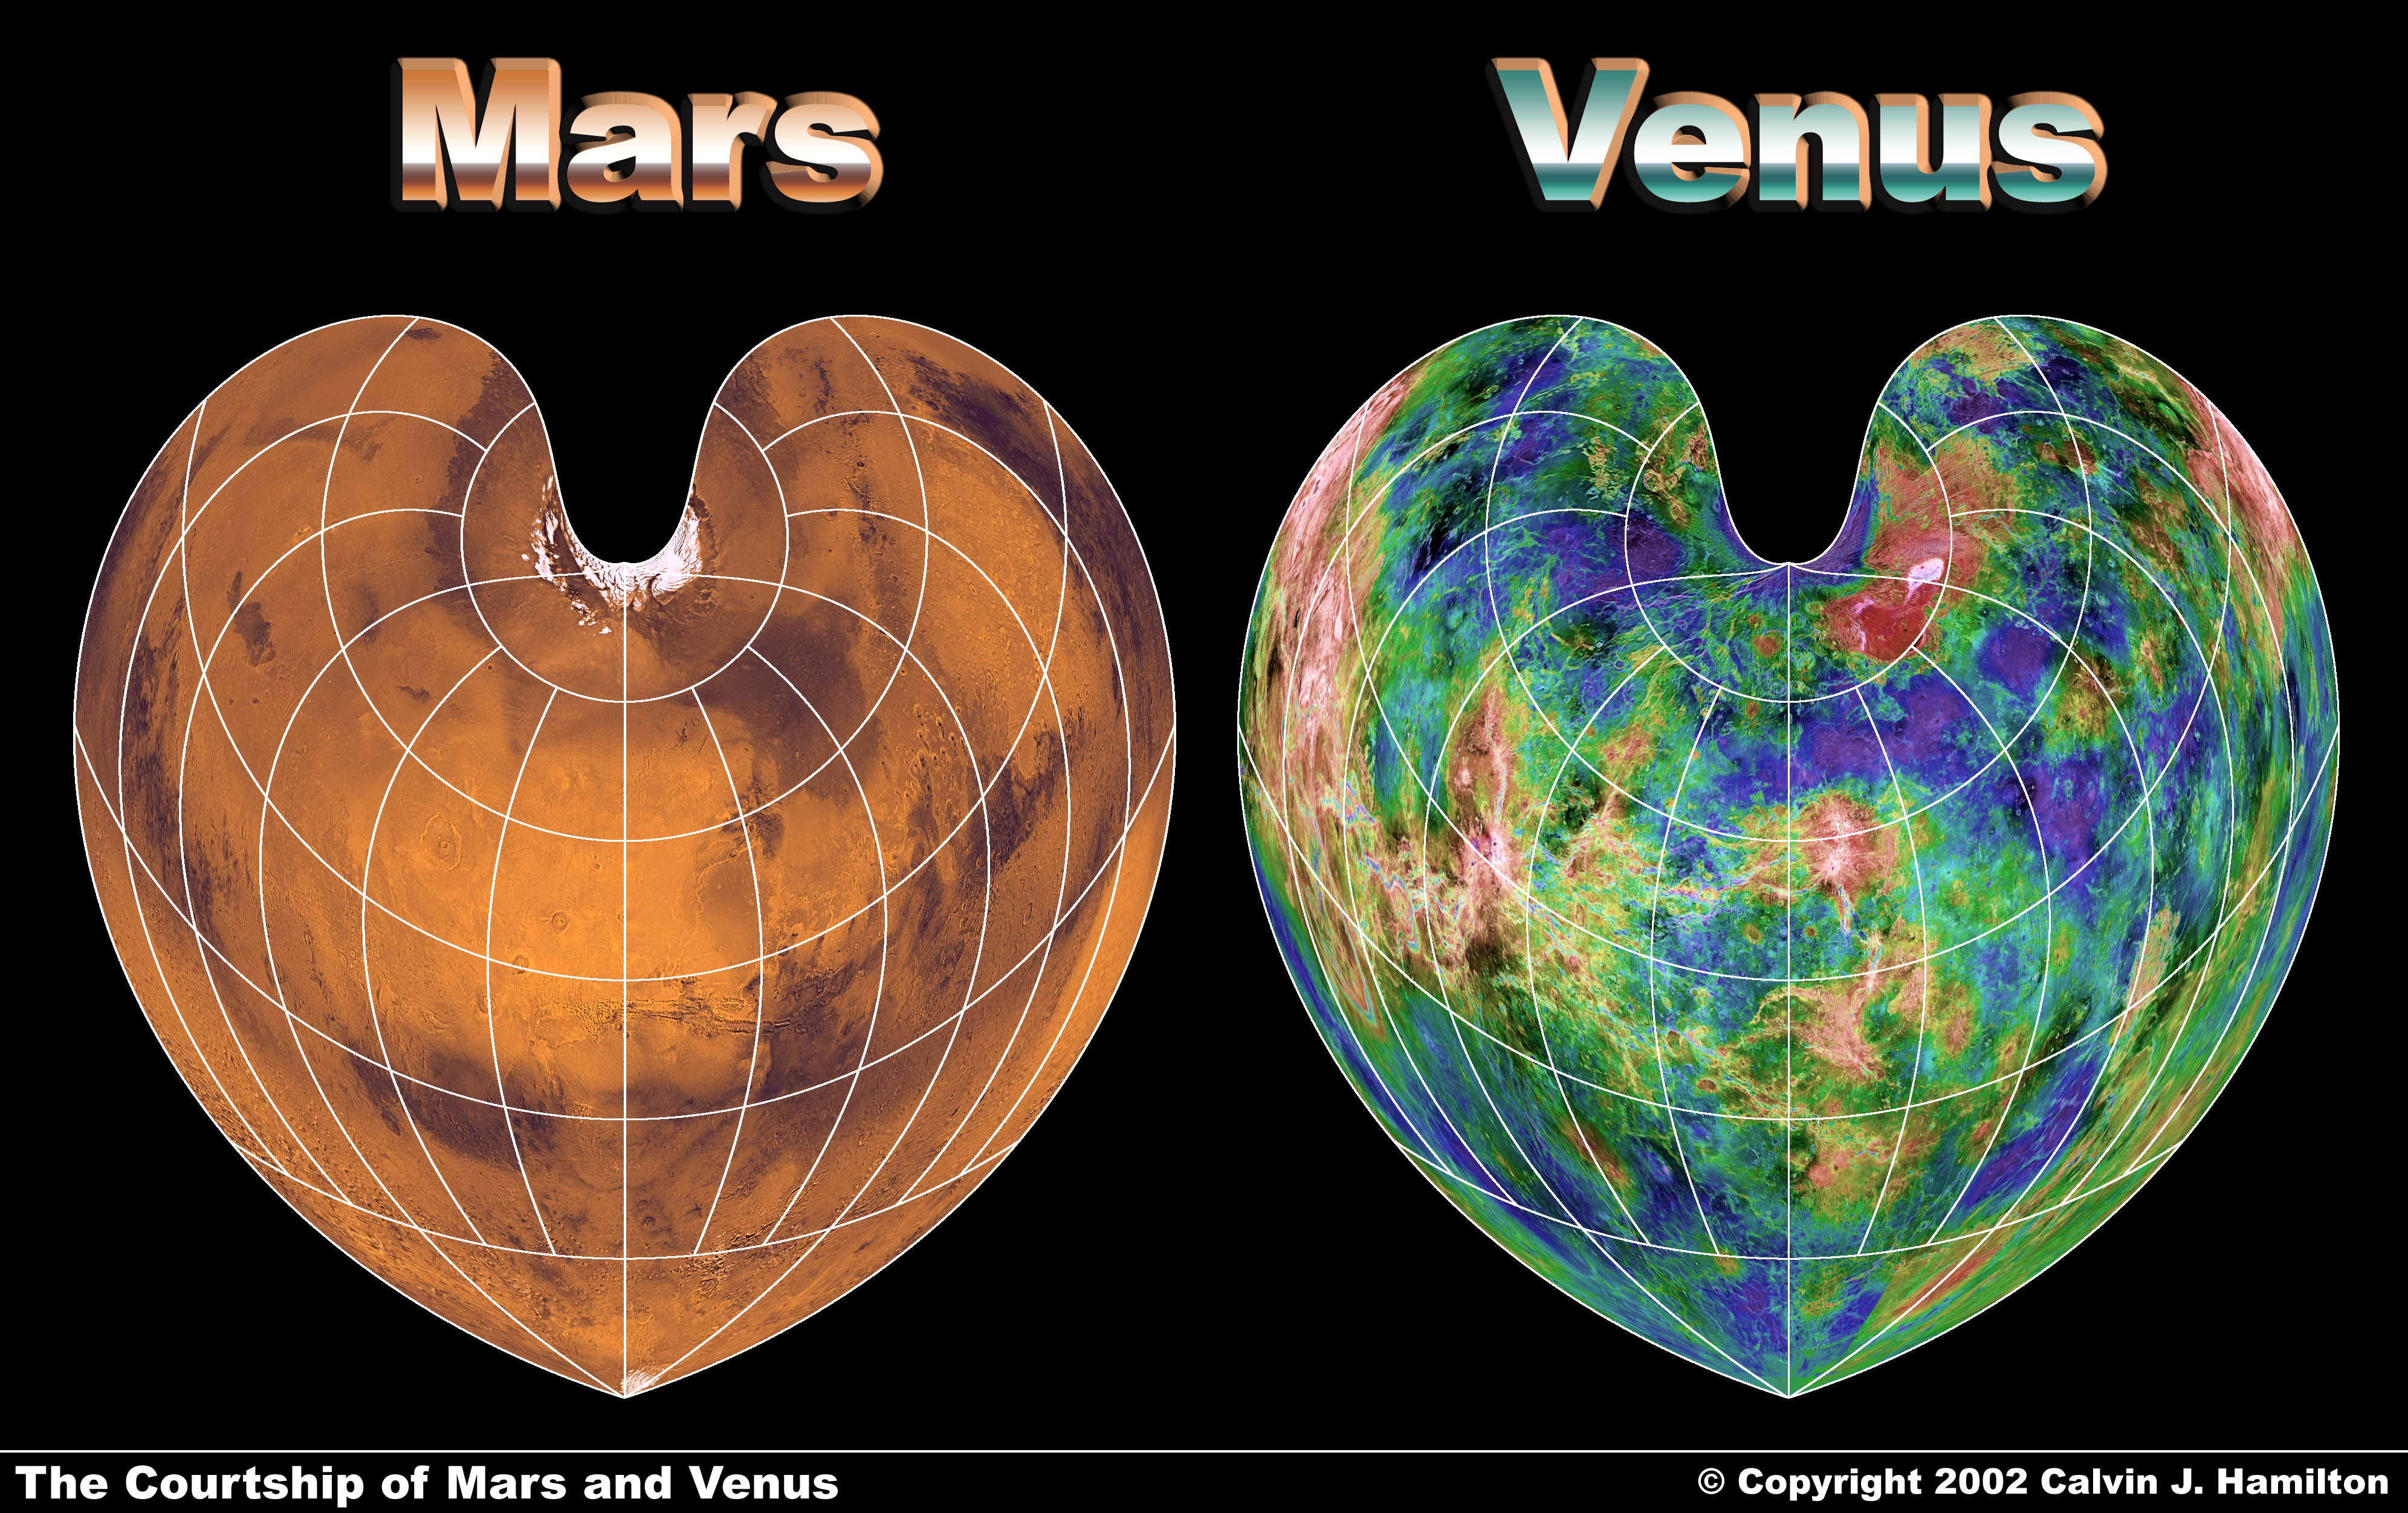 Venus Mars A The Courtship Of Mars And Venus Bonne Projection